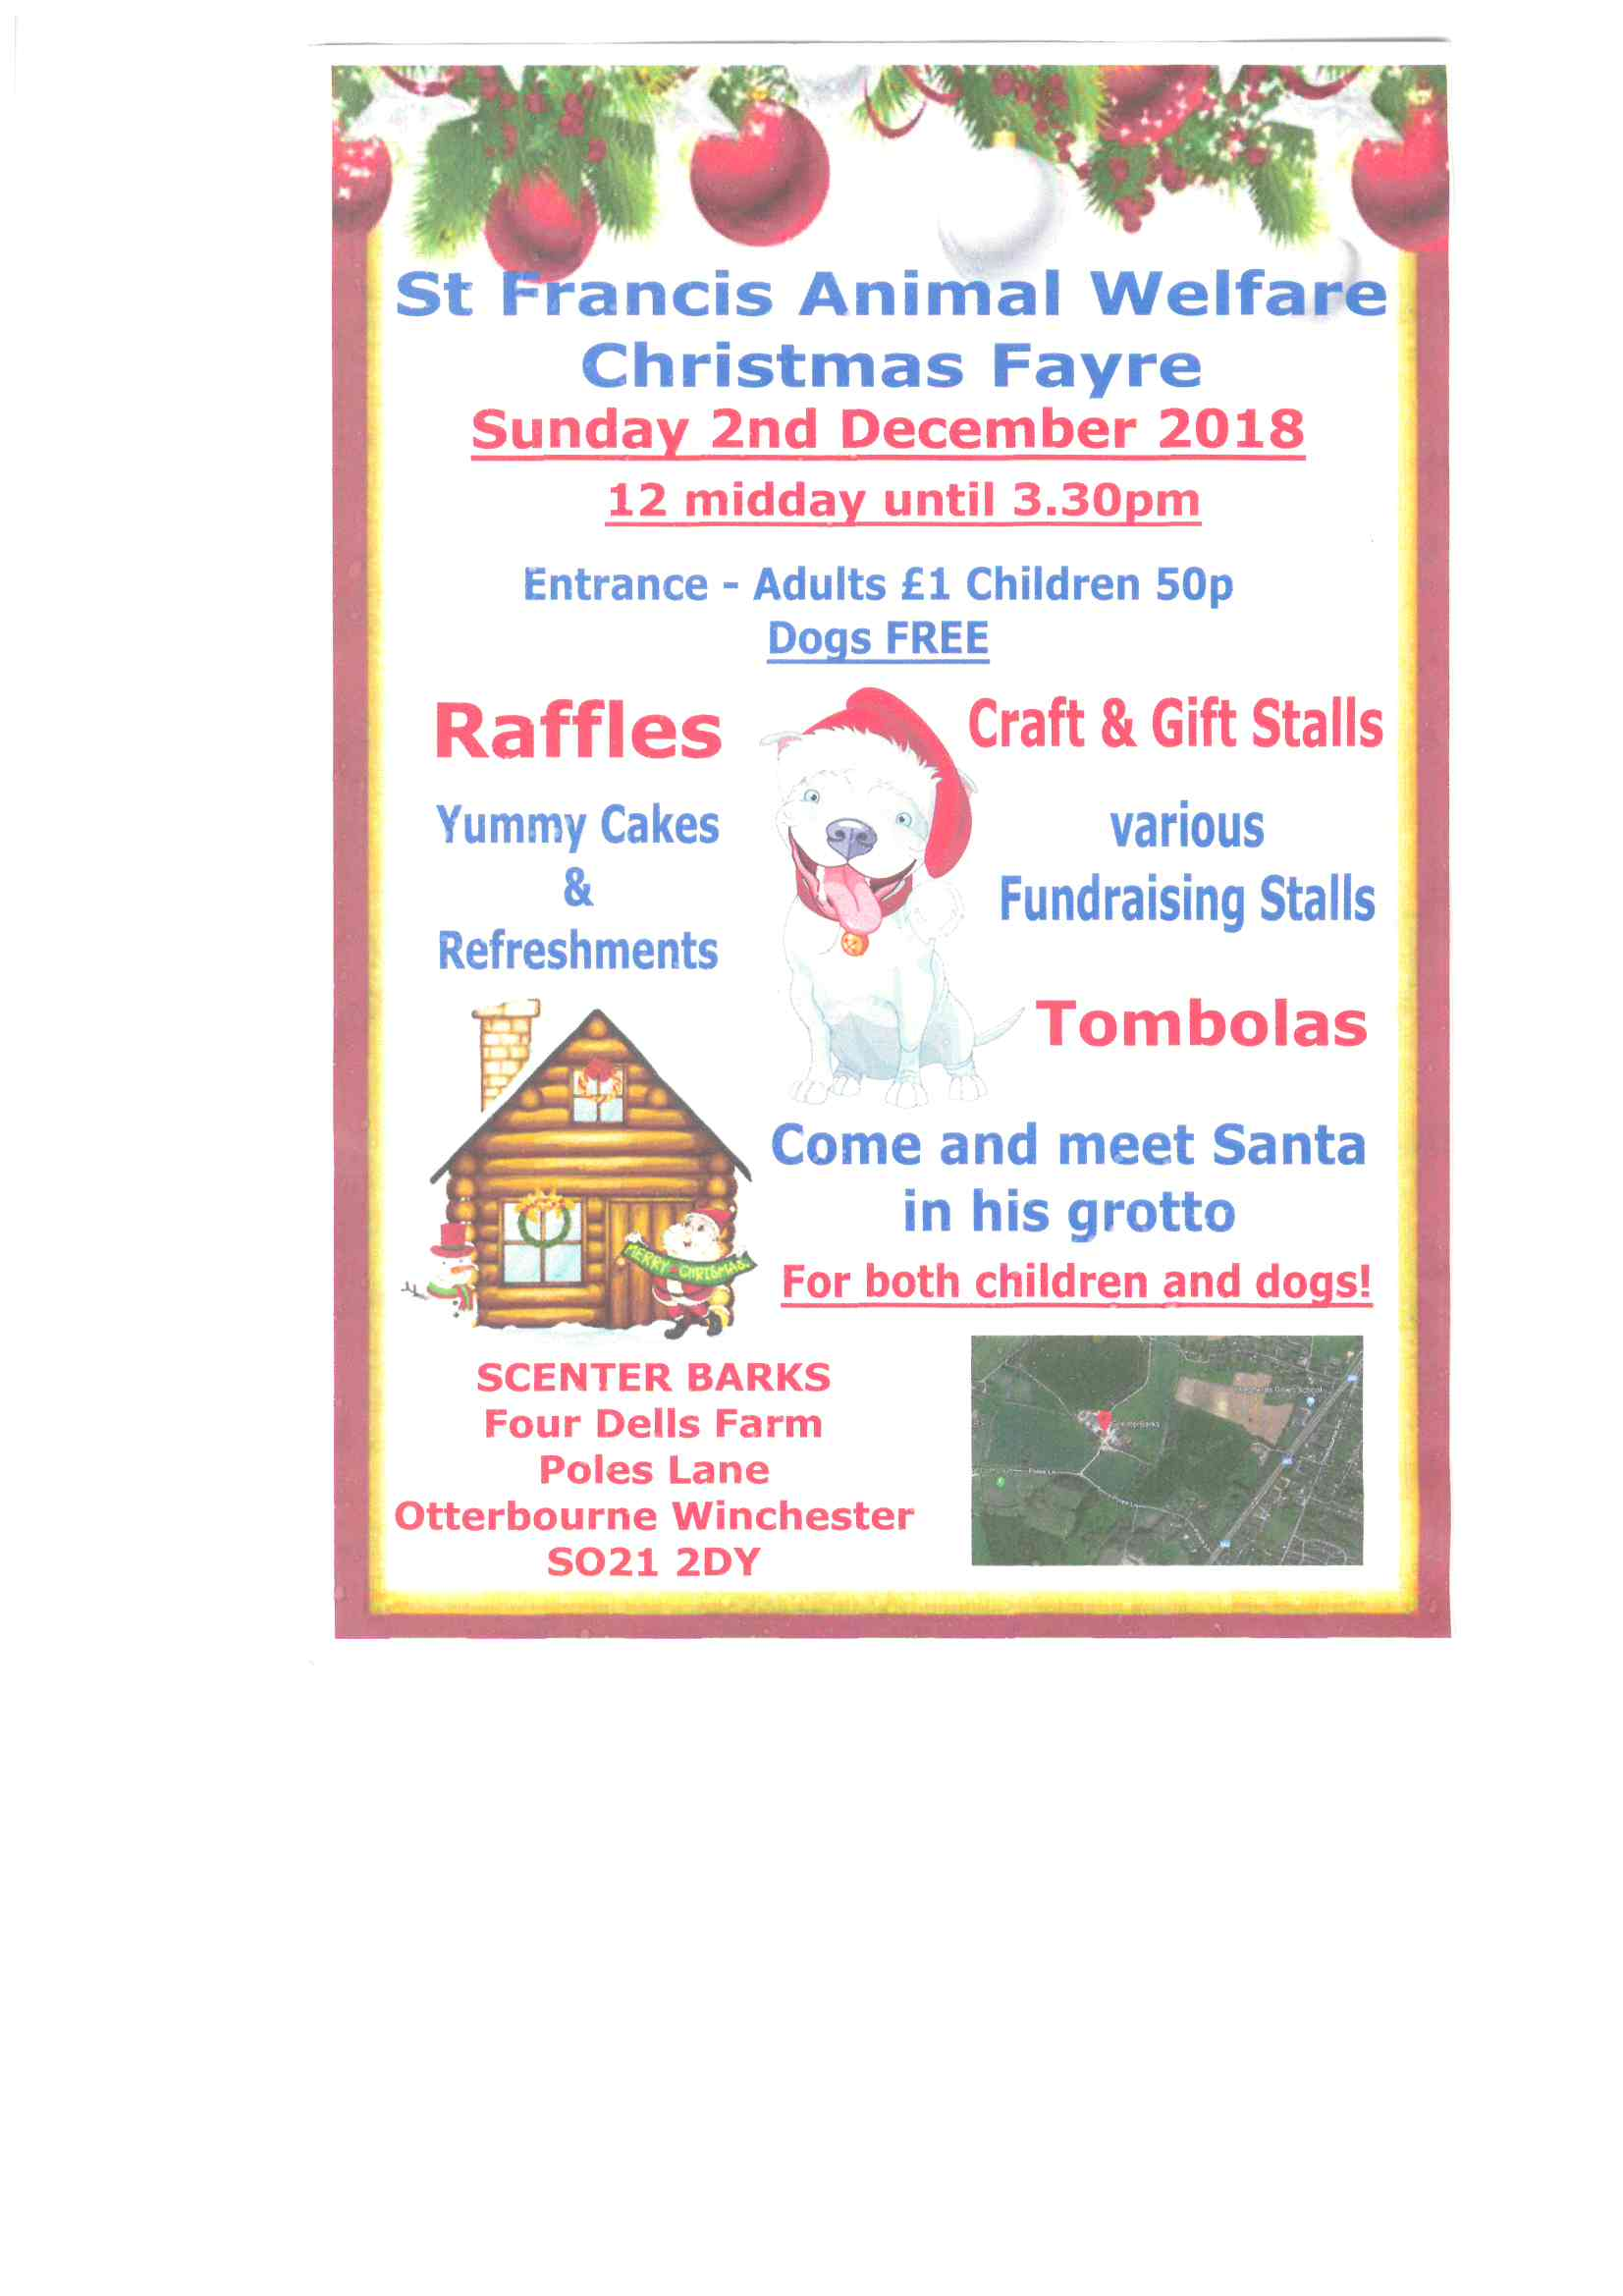 Flyer detailing faffles, craft and gift stalls, cakes and refreshments.